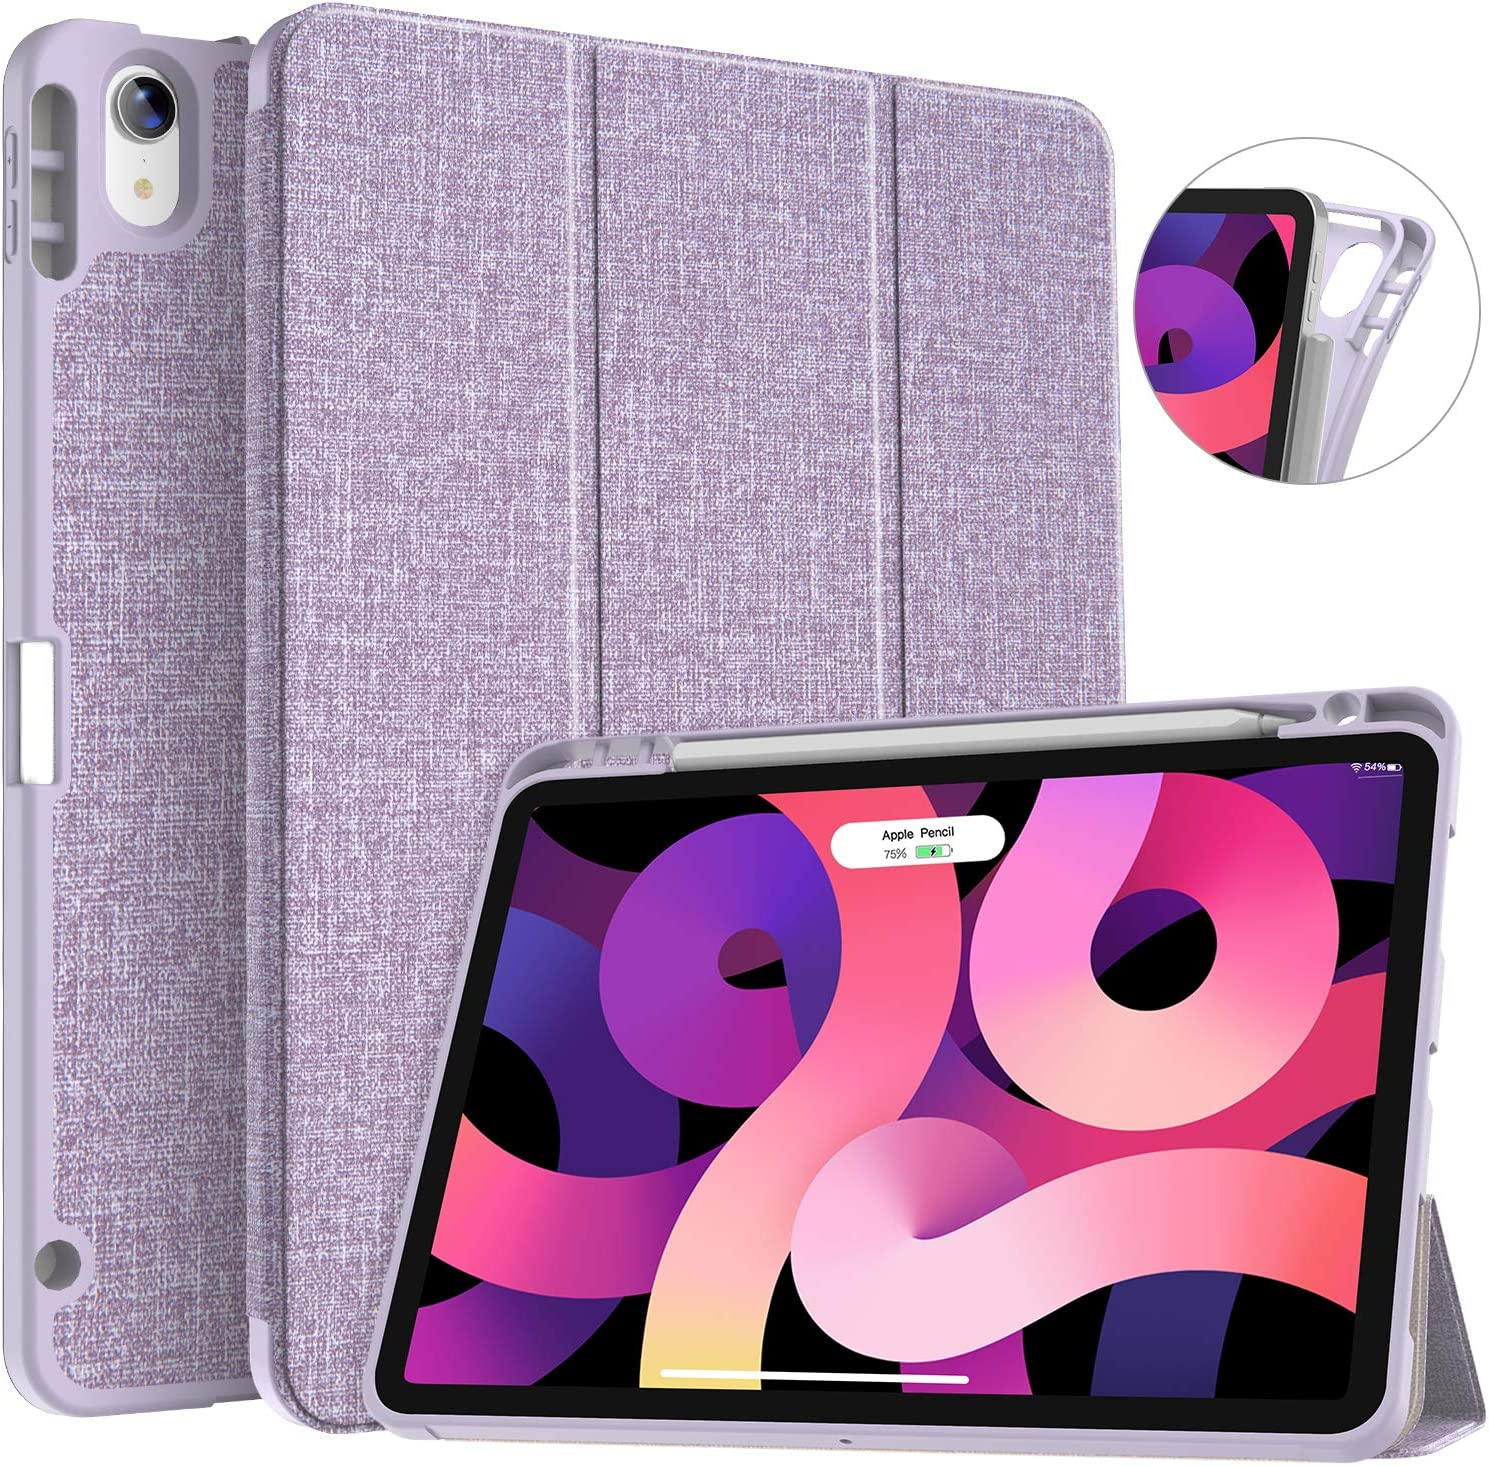 Soke iPad Air 4 Case 10.9 Inch 2020 with Pencil Holder - [Full Body Protection + Apple Pencil Charging], Soft TPU Back Cover for 2020 New iPad Air 4th Generation,New Violet